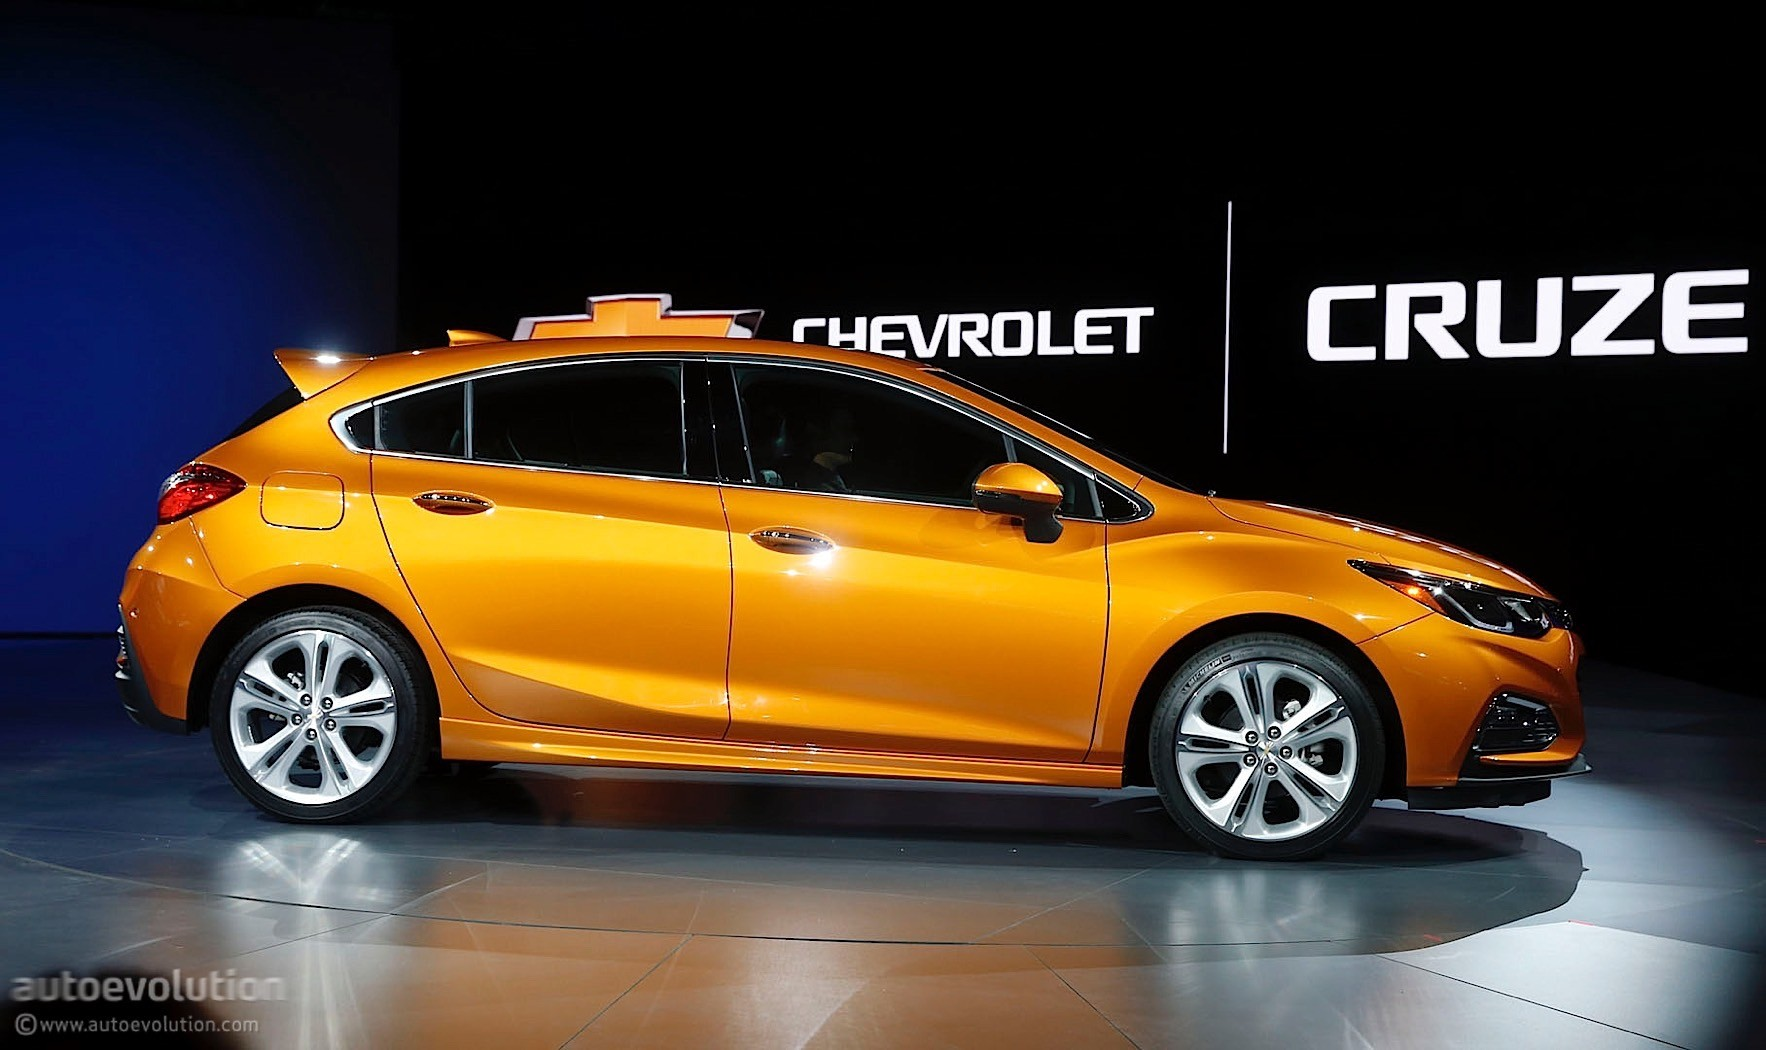 chevrolet colorado colors html with Here S The 2017 Chevrolet Cruze Hatch In Full Color Live Photos 103560 on 16375849 together with 61635 Raptor Bed Liner also 45986 Lsd moreover Updated My2017 Chevrolet Colorado likewise 59860286.